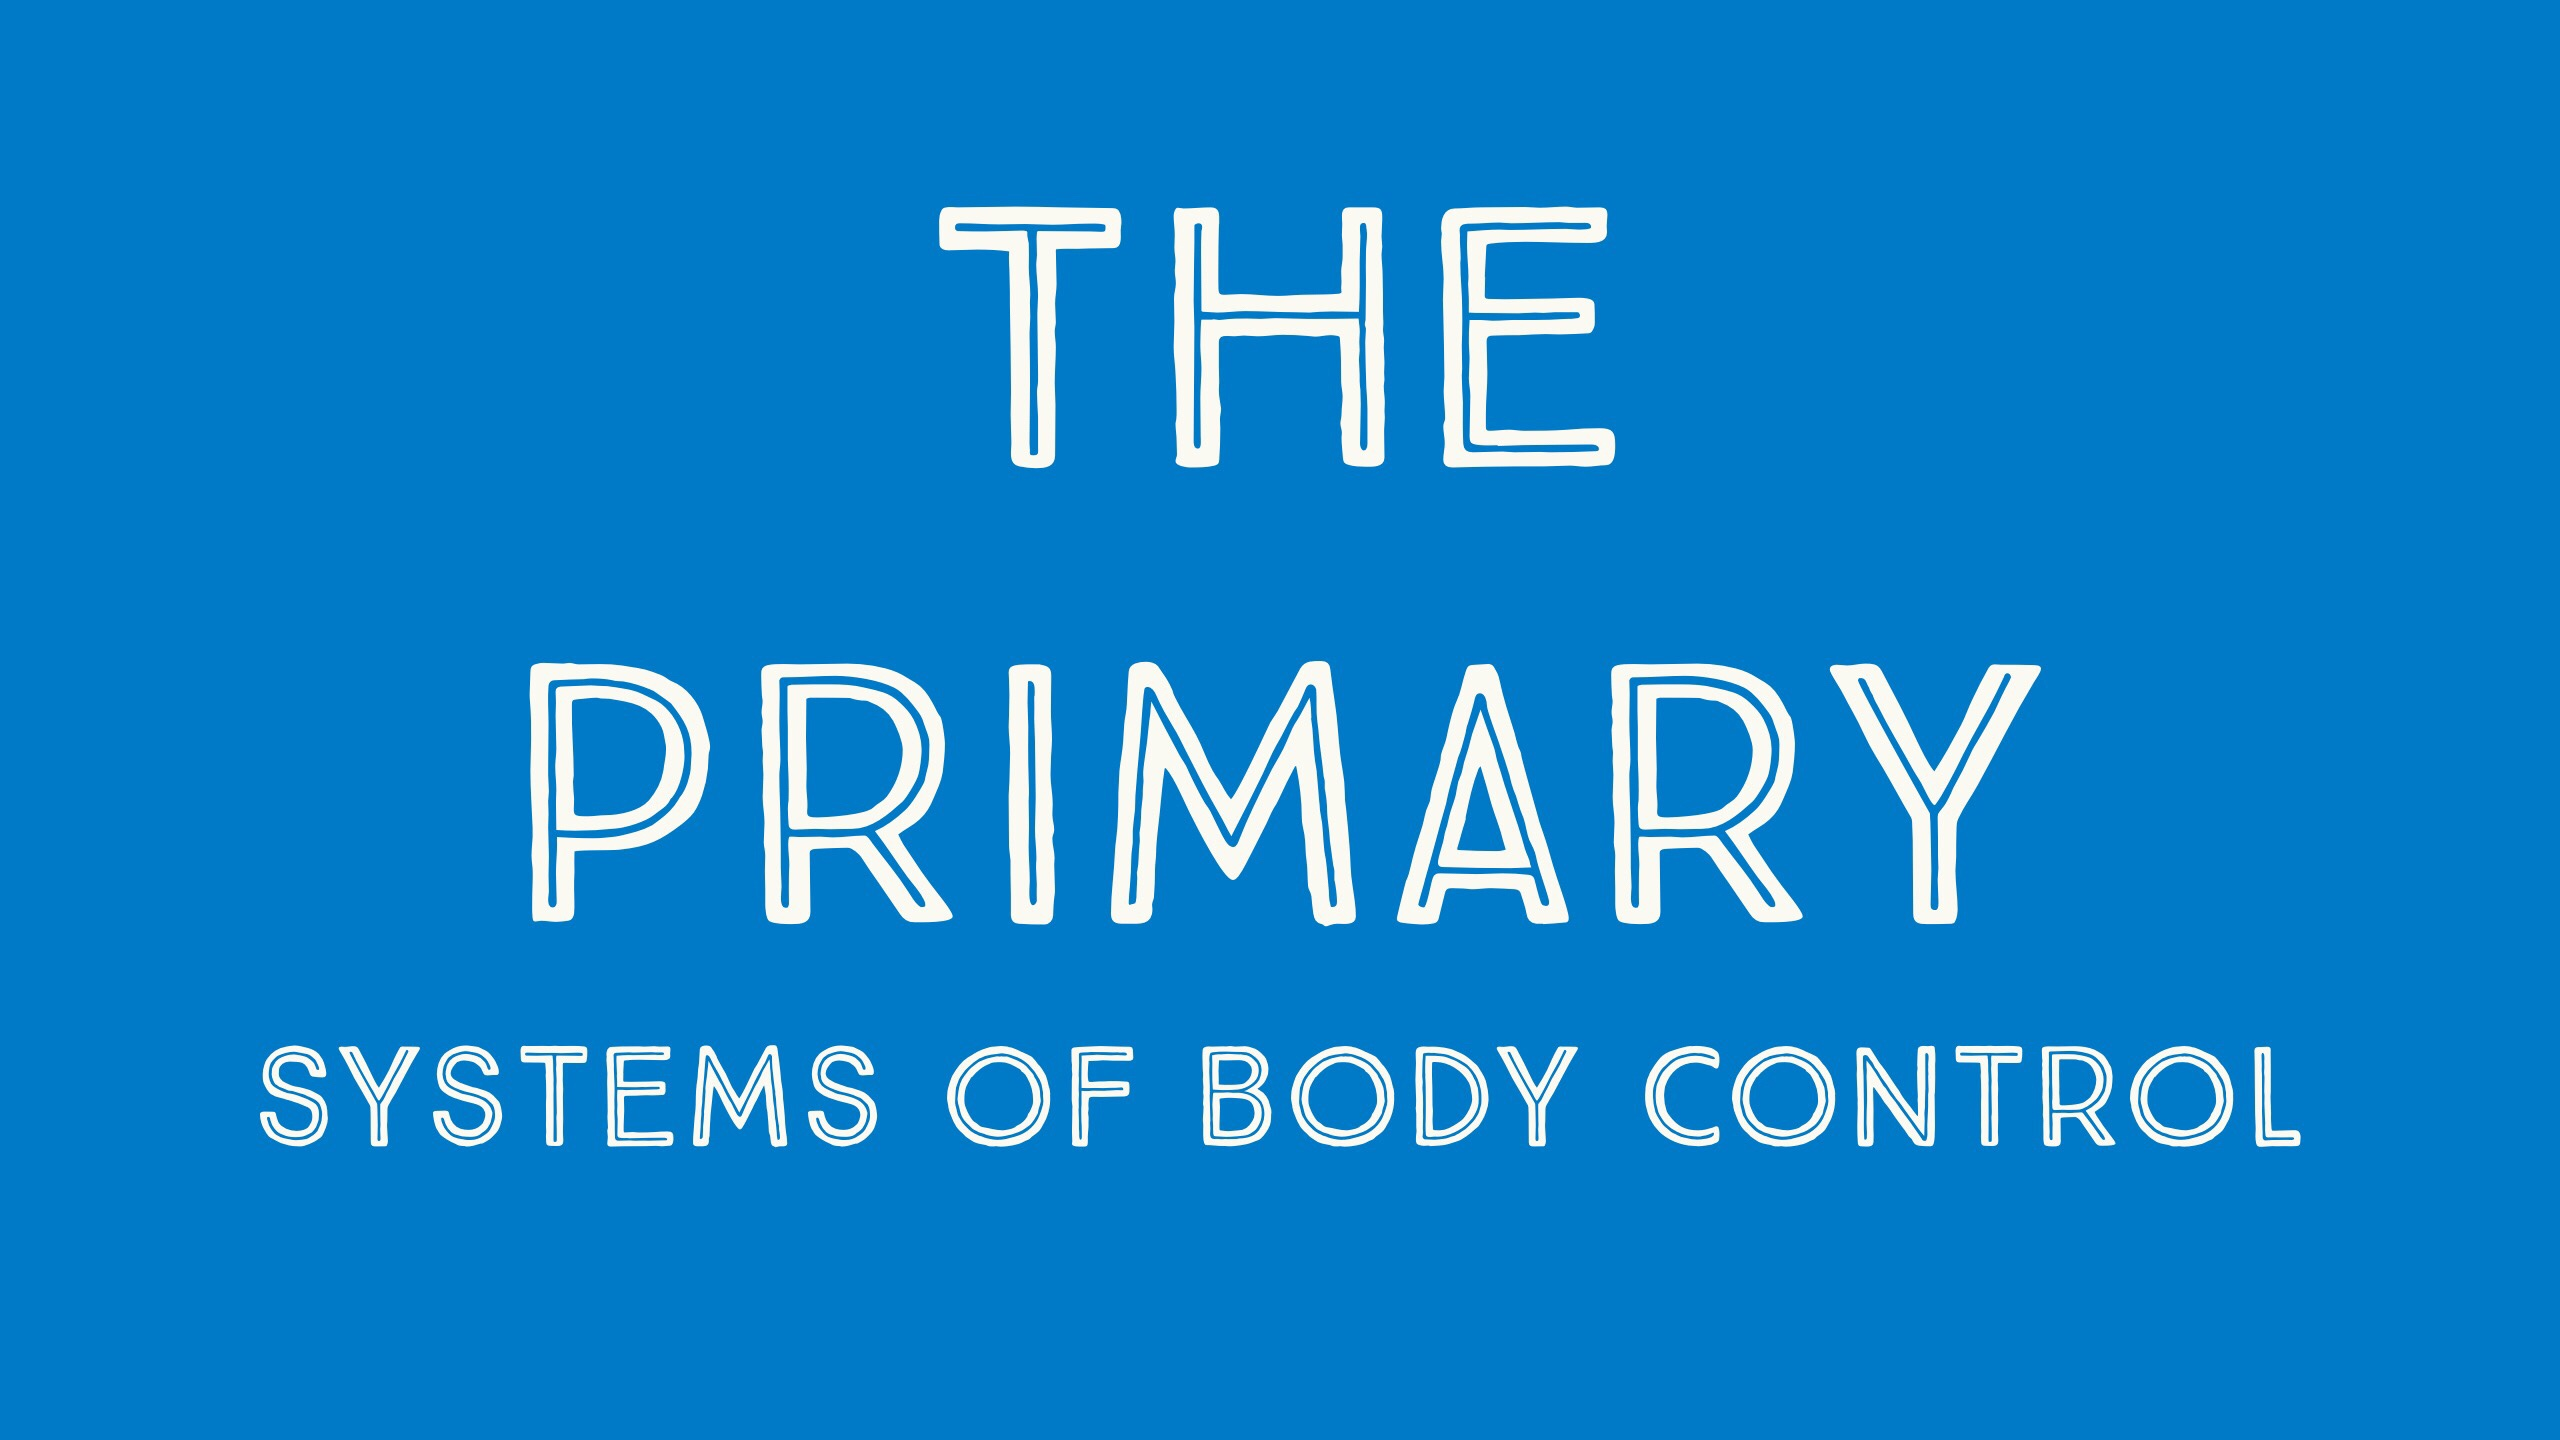 The primary systems of body control